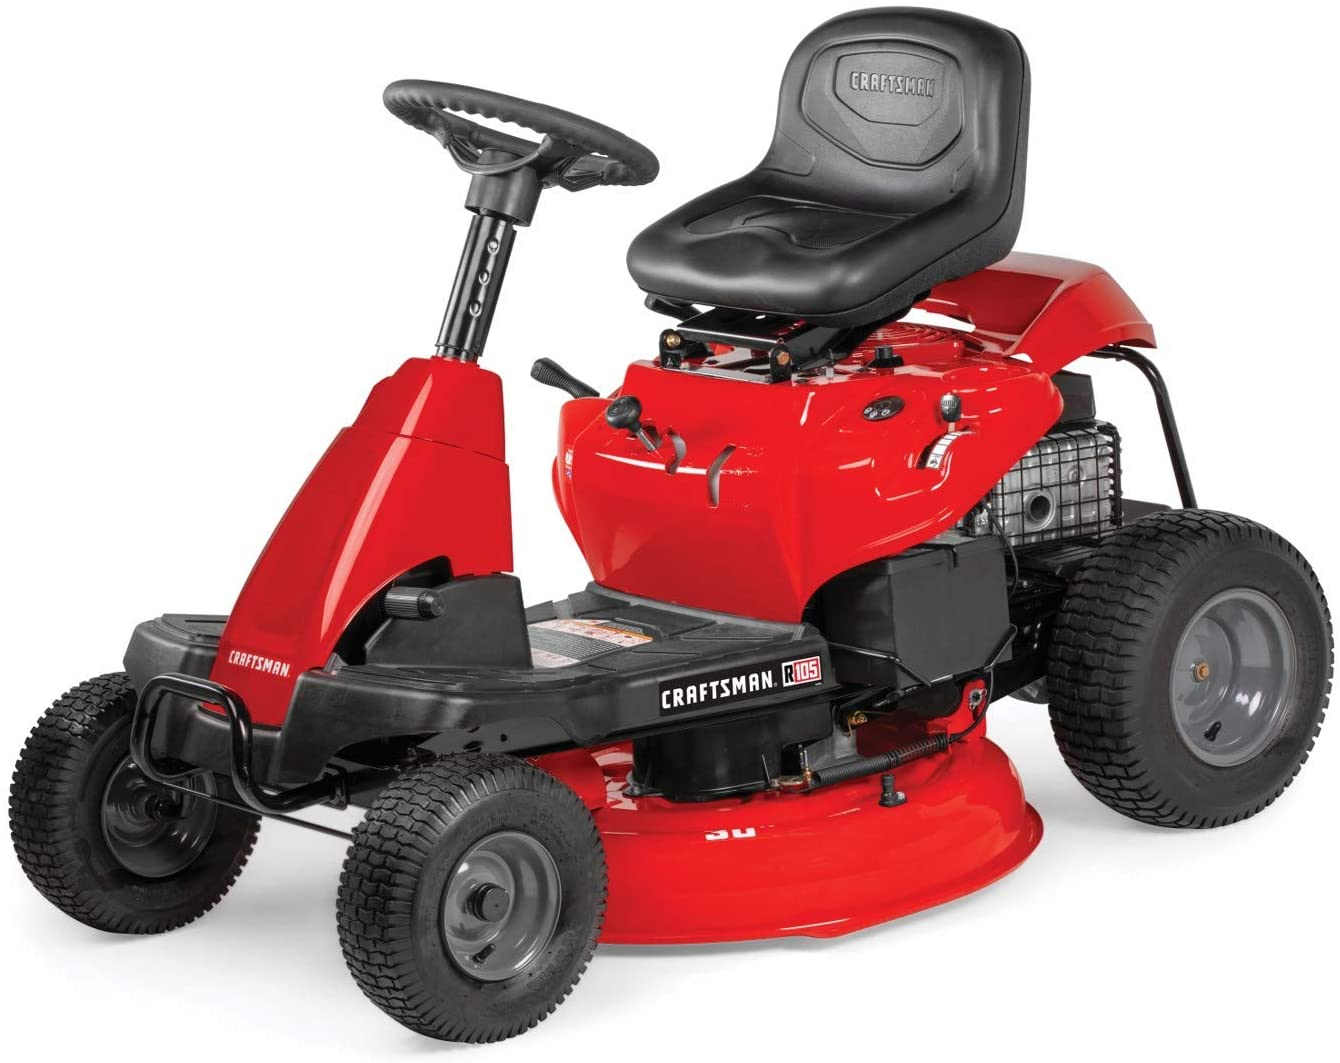 How to Disable Reverse Safety Switch on Craftsman Mower